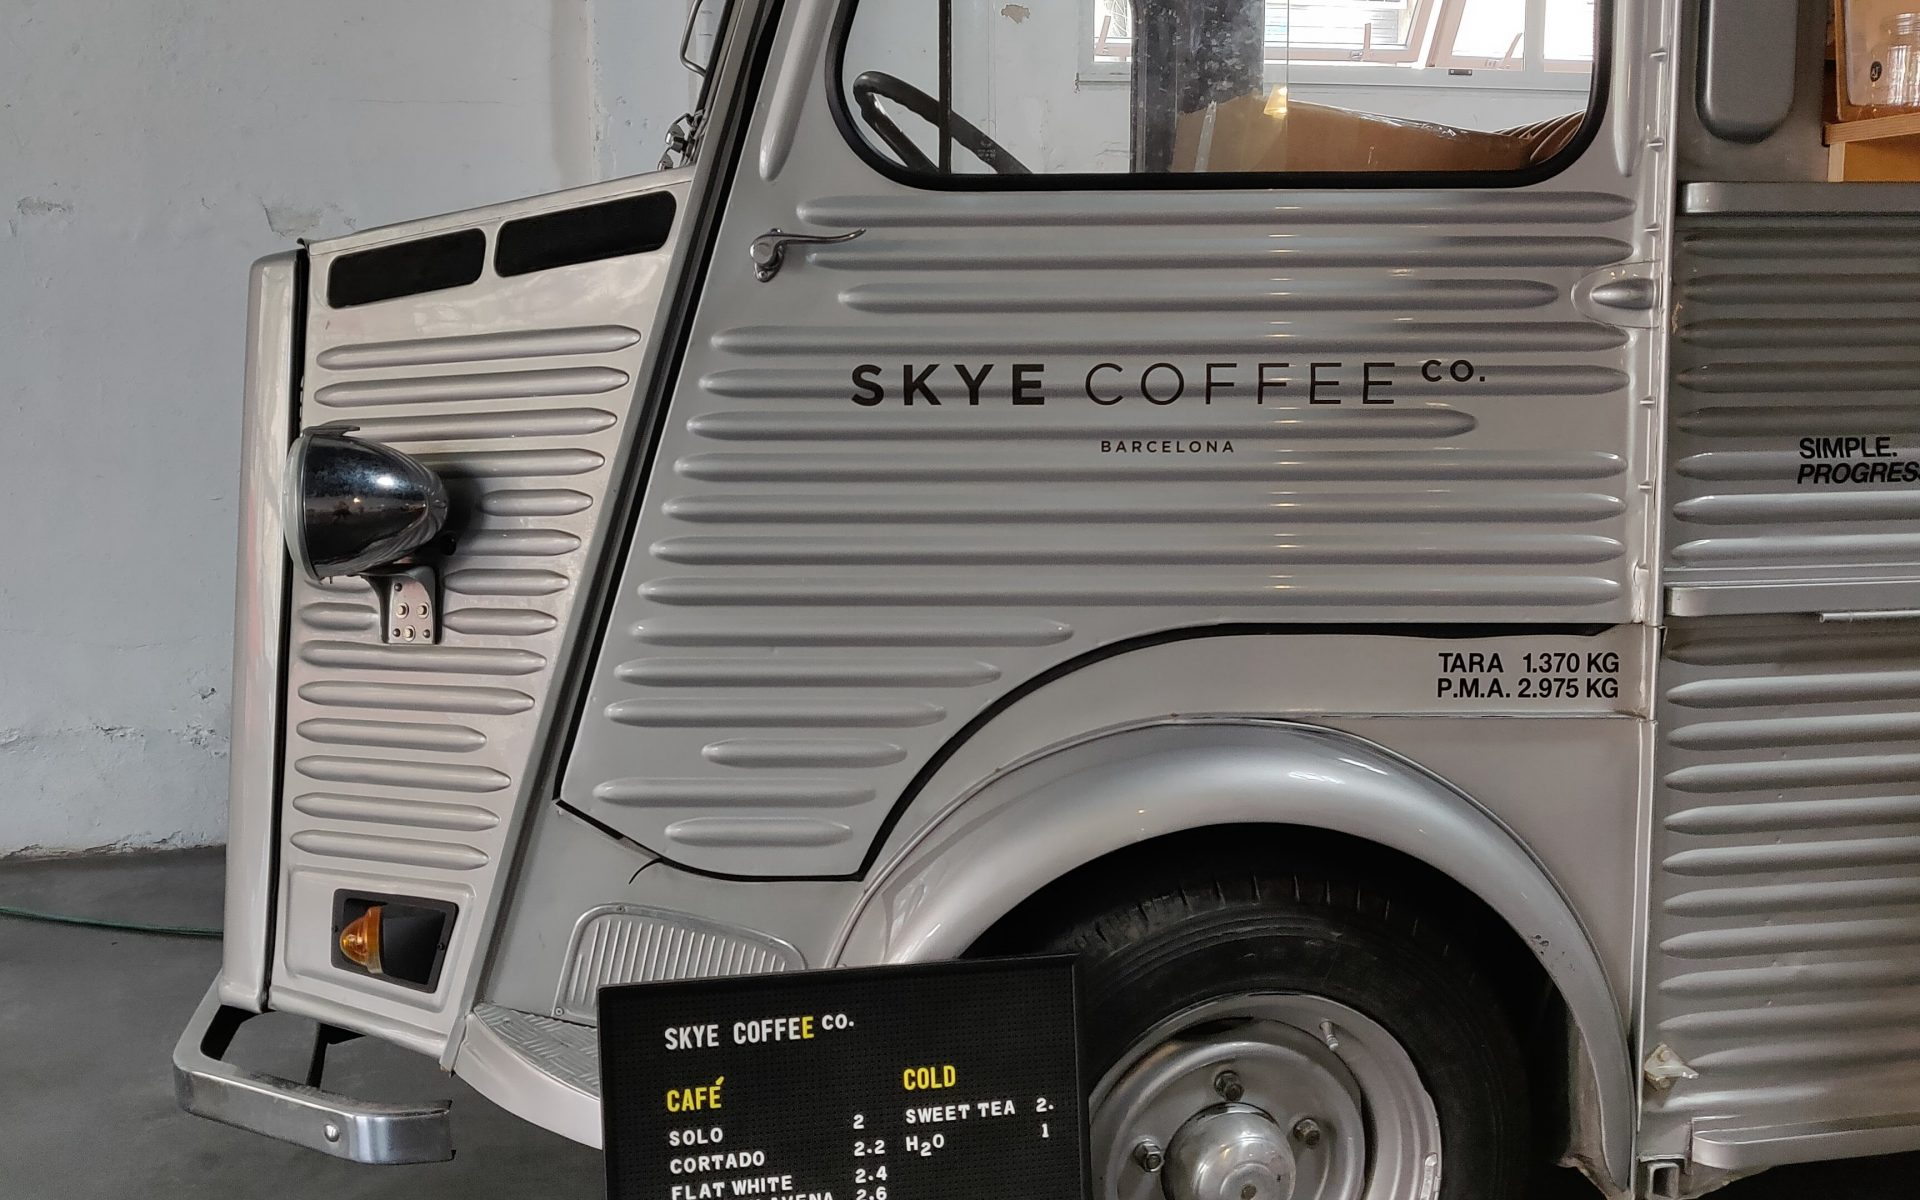 SKYE Coffee Co. Barcelona